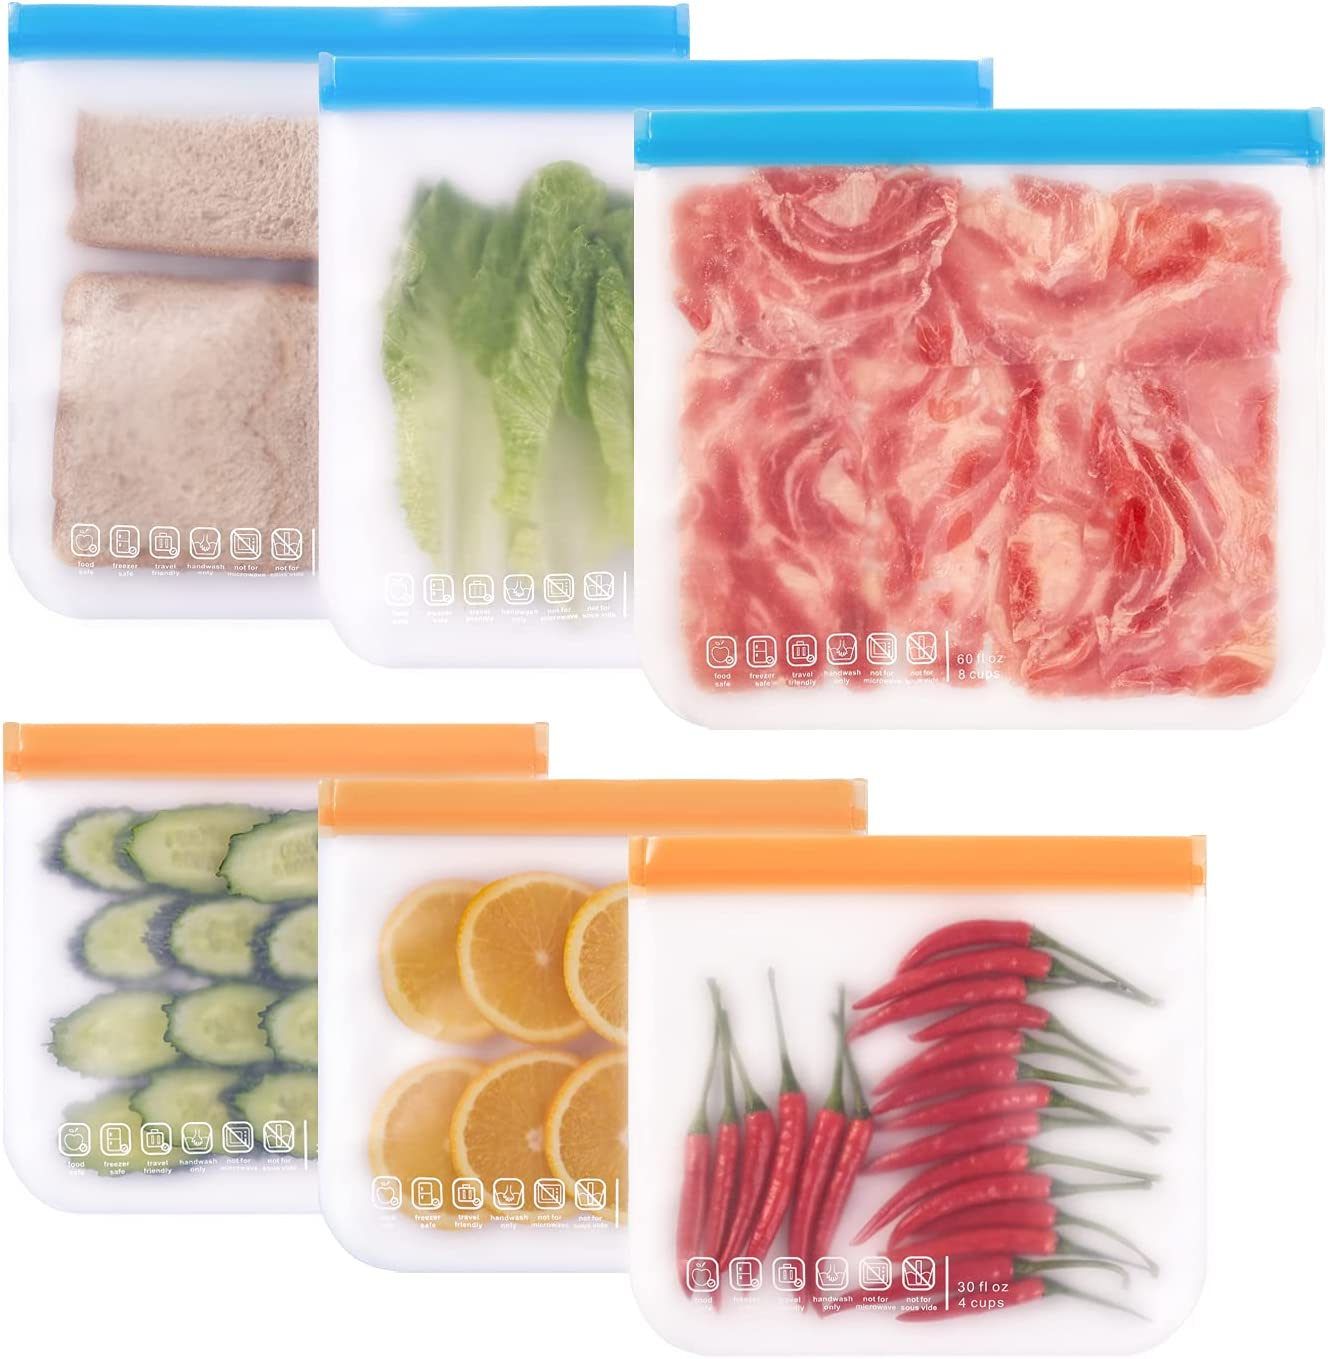 Reusable Food Storage Bags- 6 Pack BPA FREE Flat Freezer Bags (3 Reusable Gallon Bags & 3 Leakproof Reusable Sandwich Bags Small Kids Snack Bags) for Meat Veggies Fruit